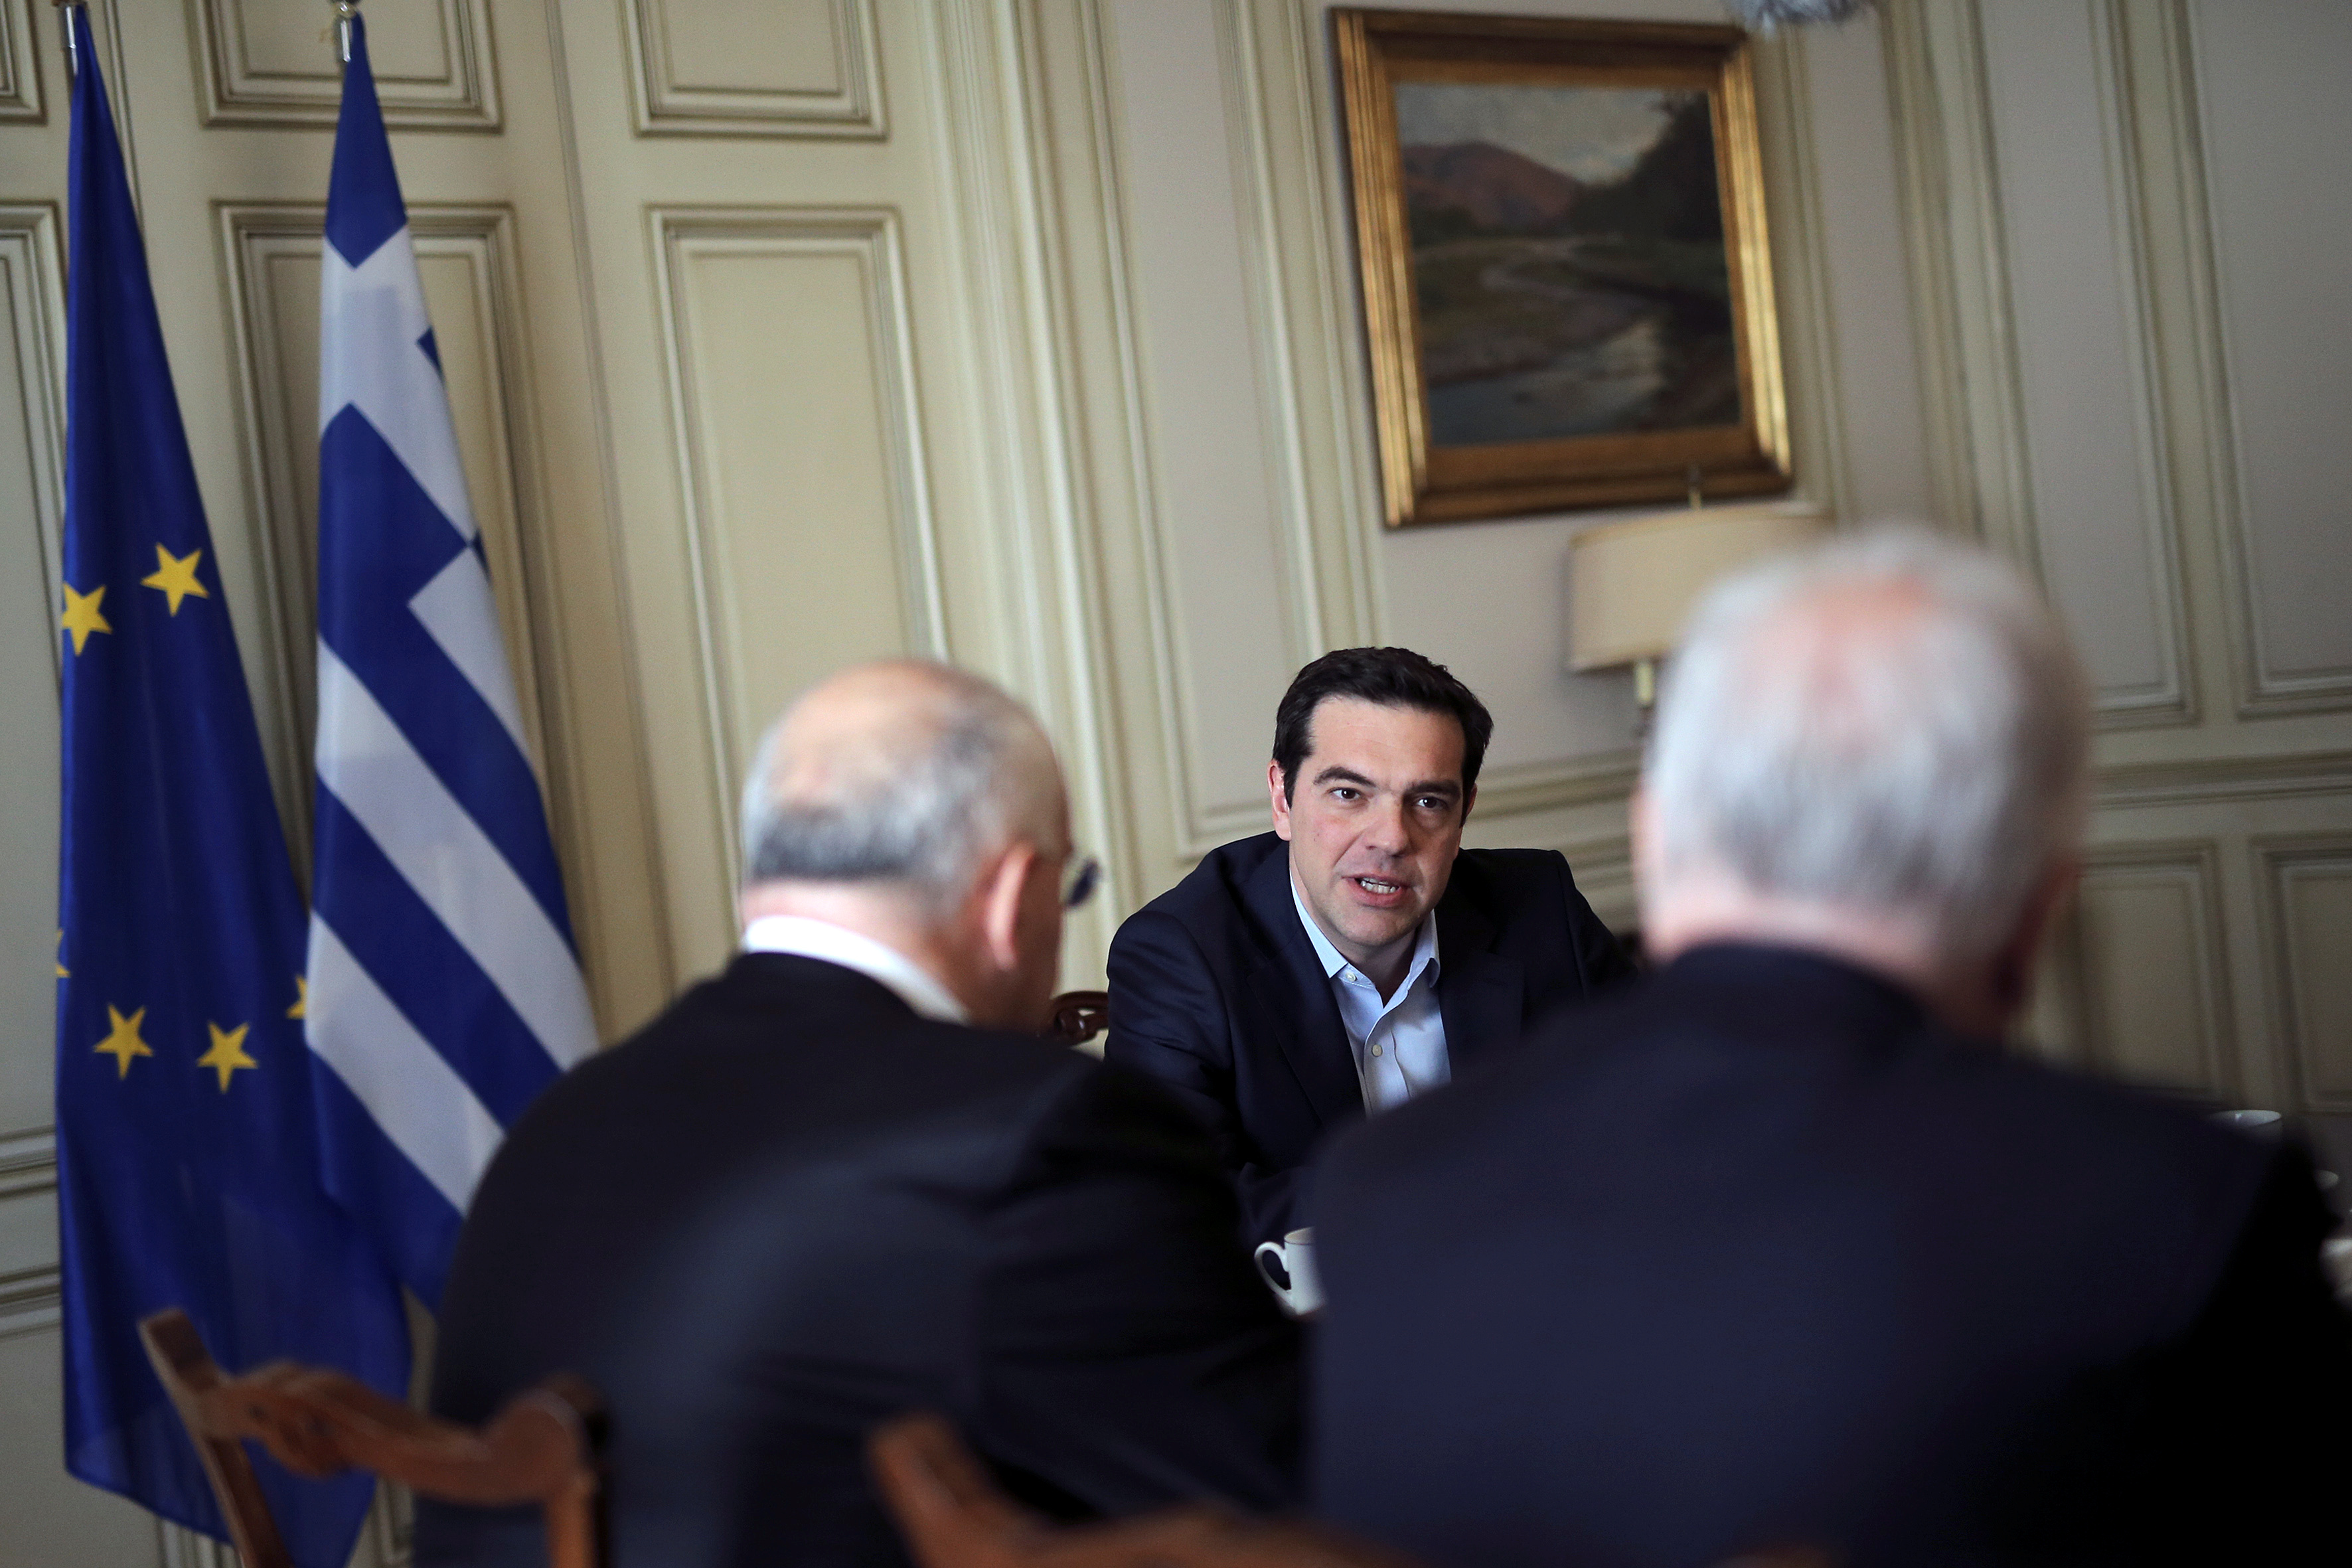 Greek Prime Minister Alexis Tsipras speaks to members of the board of the Hellenic Bank Association during a meeting at the Maximos Mansion in Athens, Greece, February 28, 2017. REUTERS/Alkis Konstantinidis - RTS10RW9